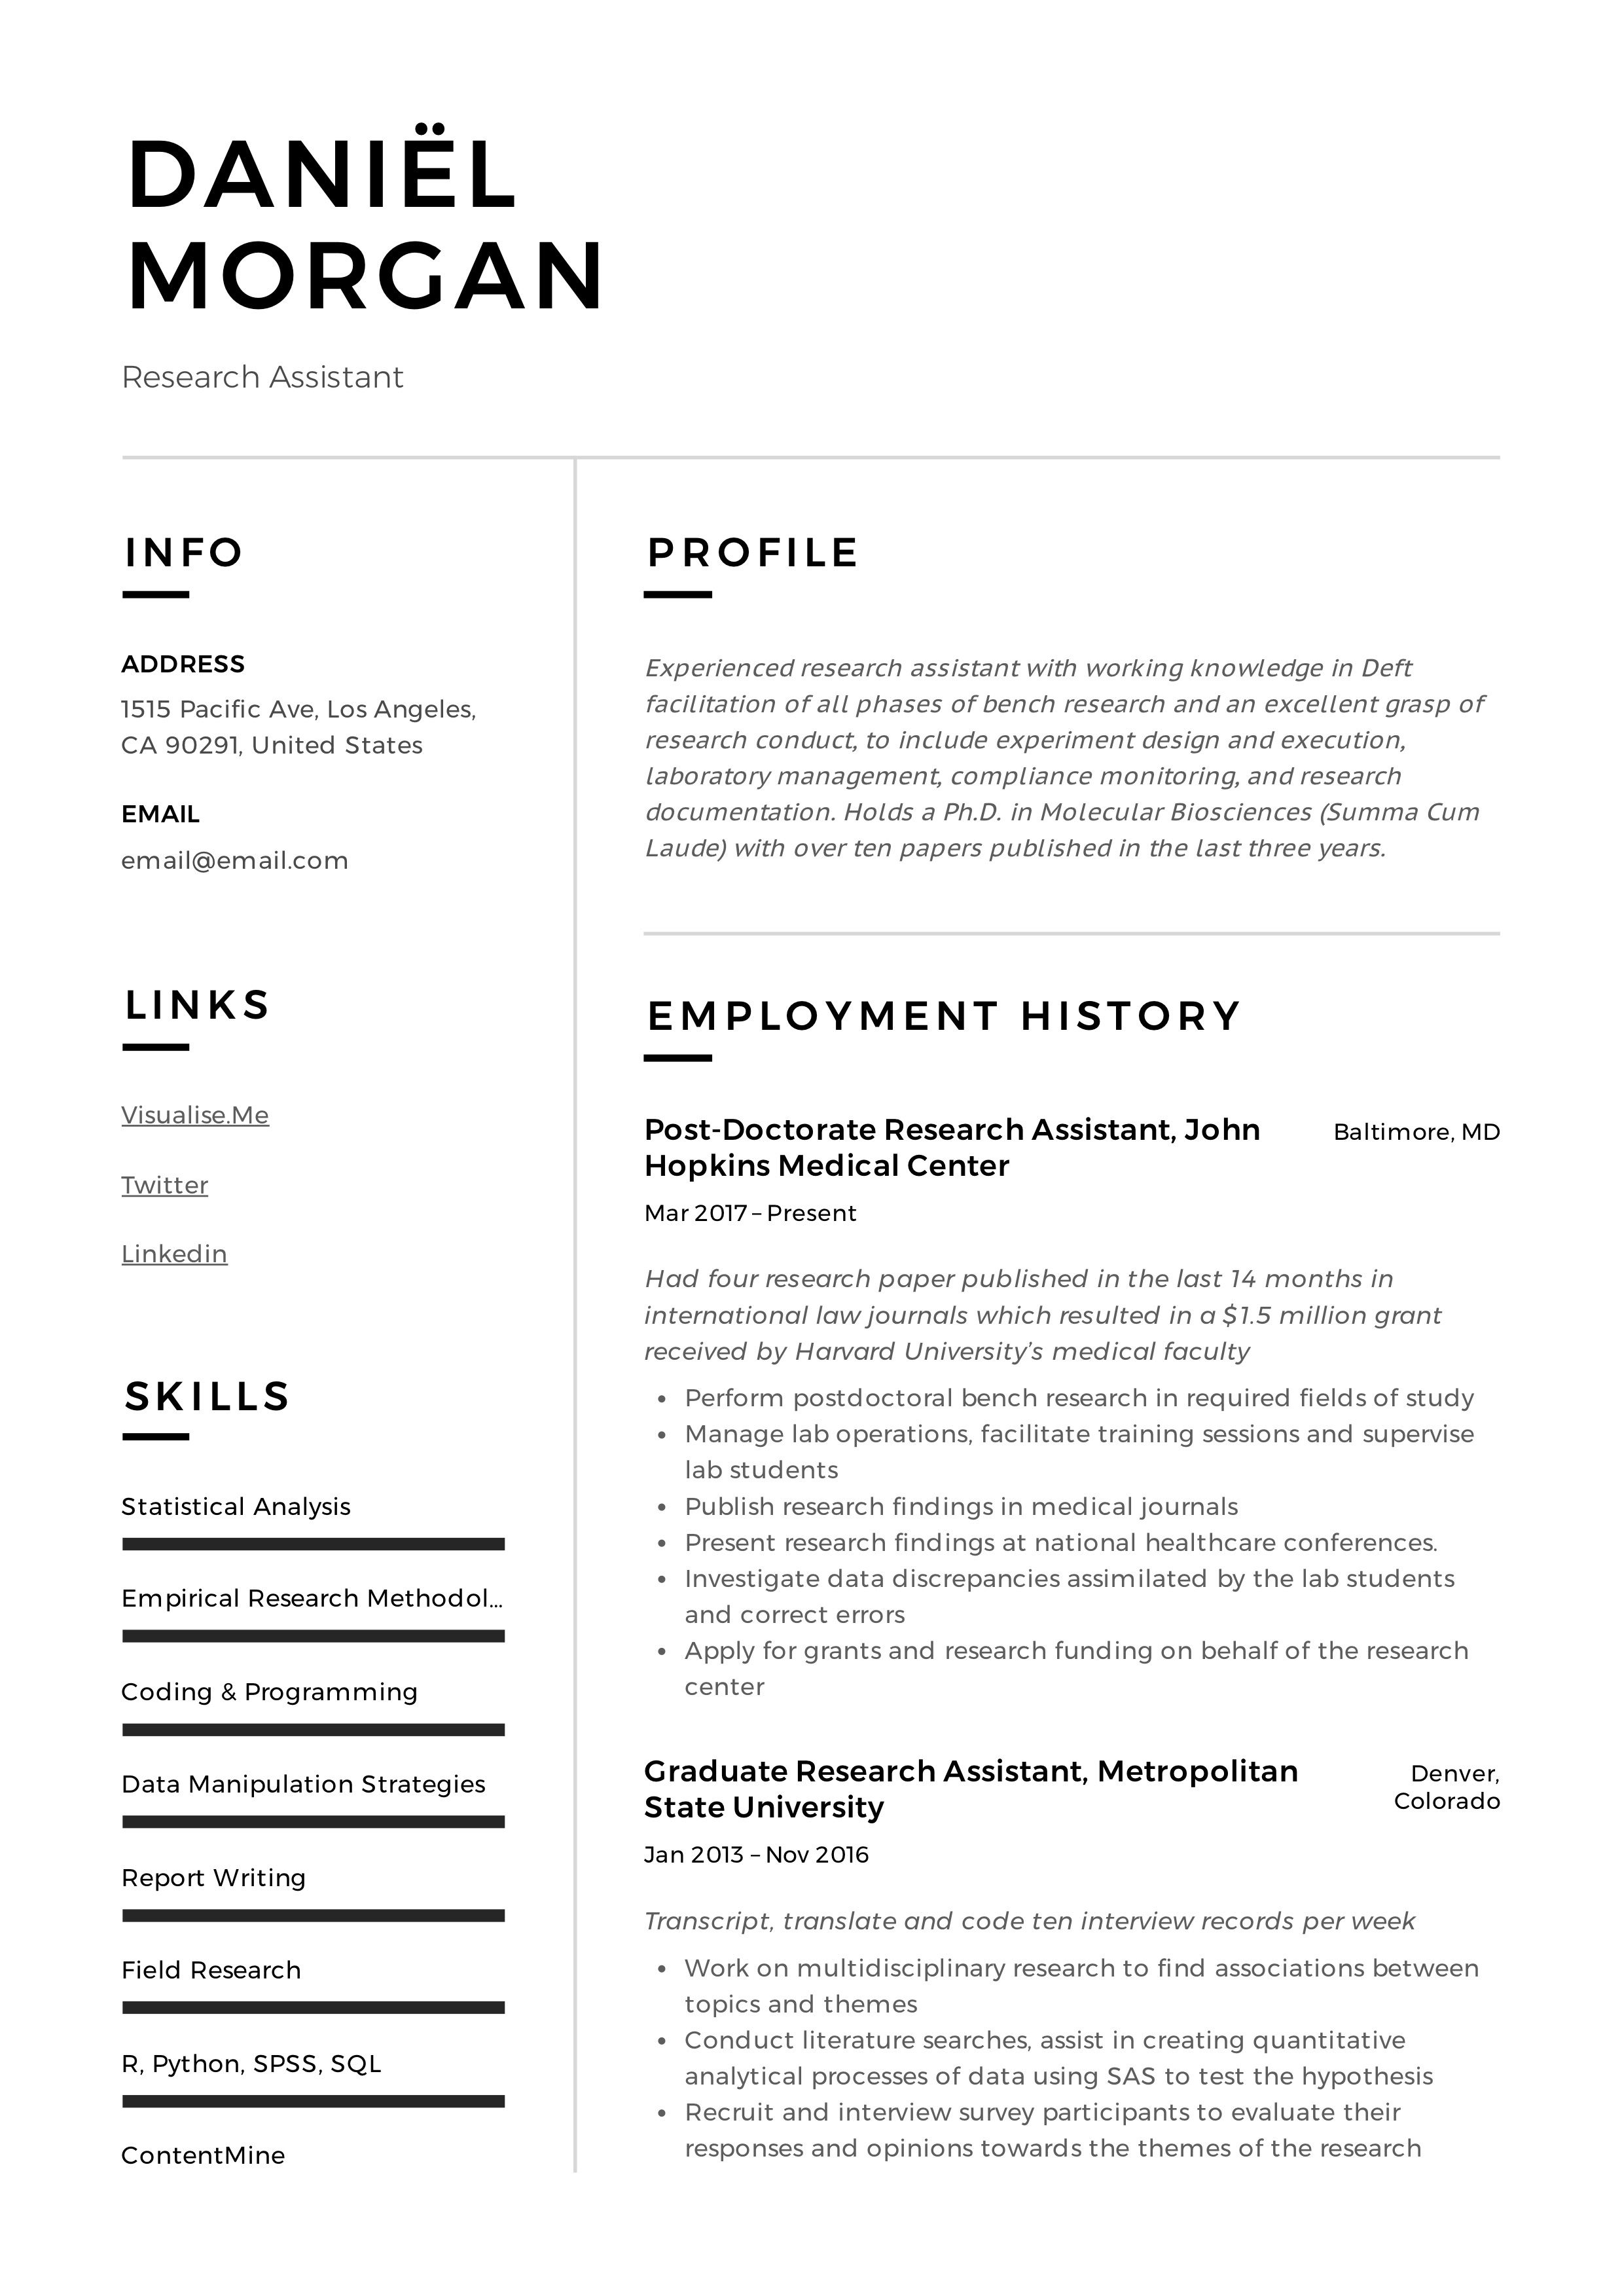 Research assistant resume writing guide in 2020